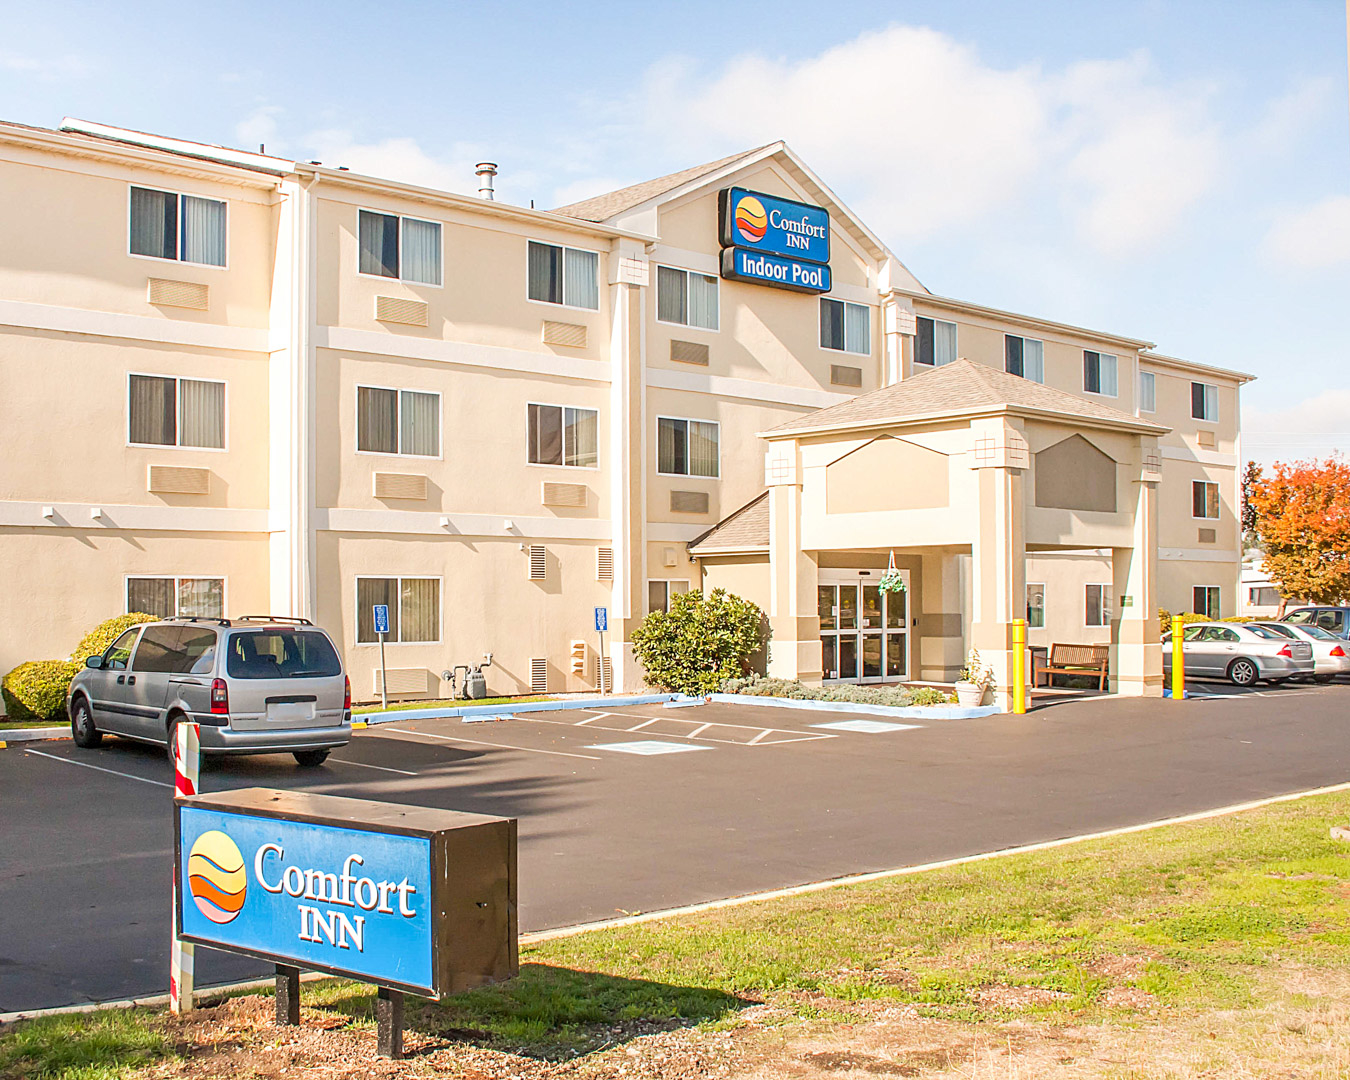 Comfort Inn North image 0